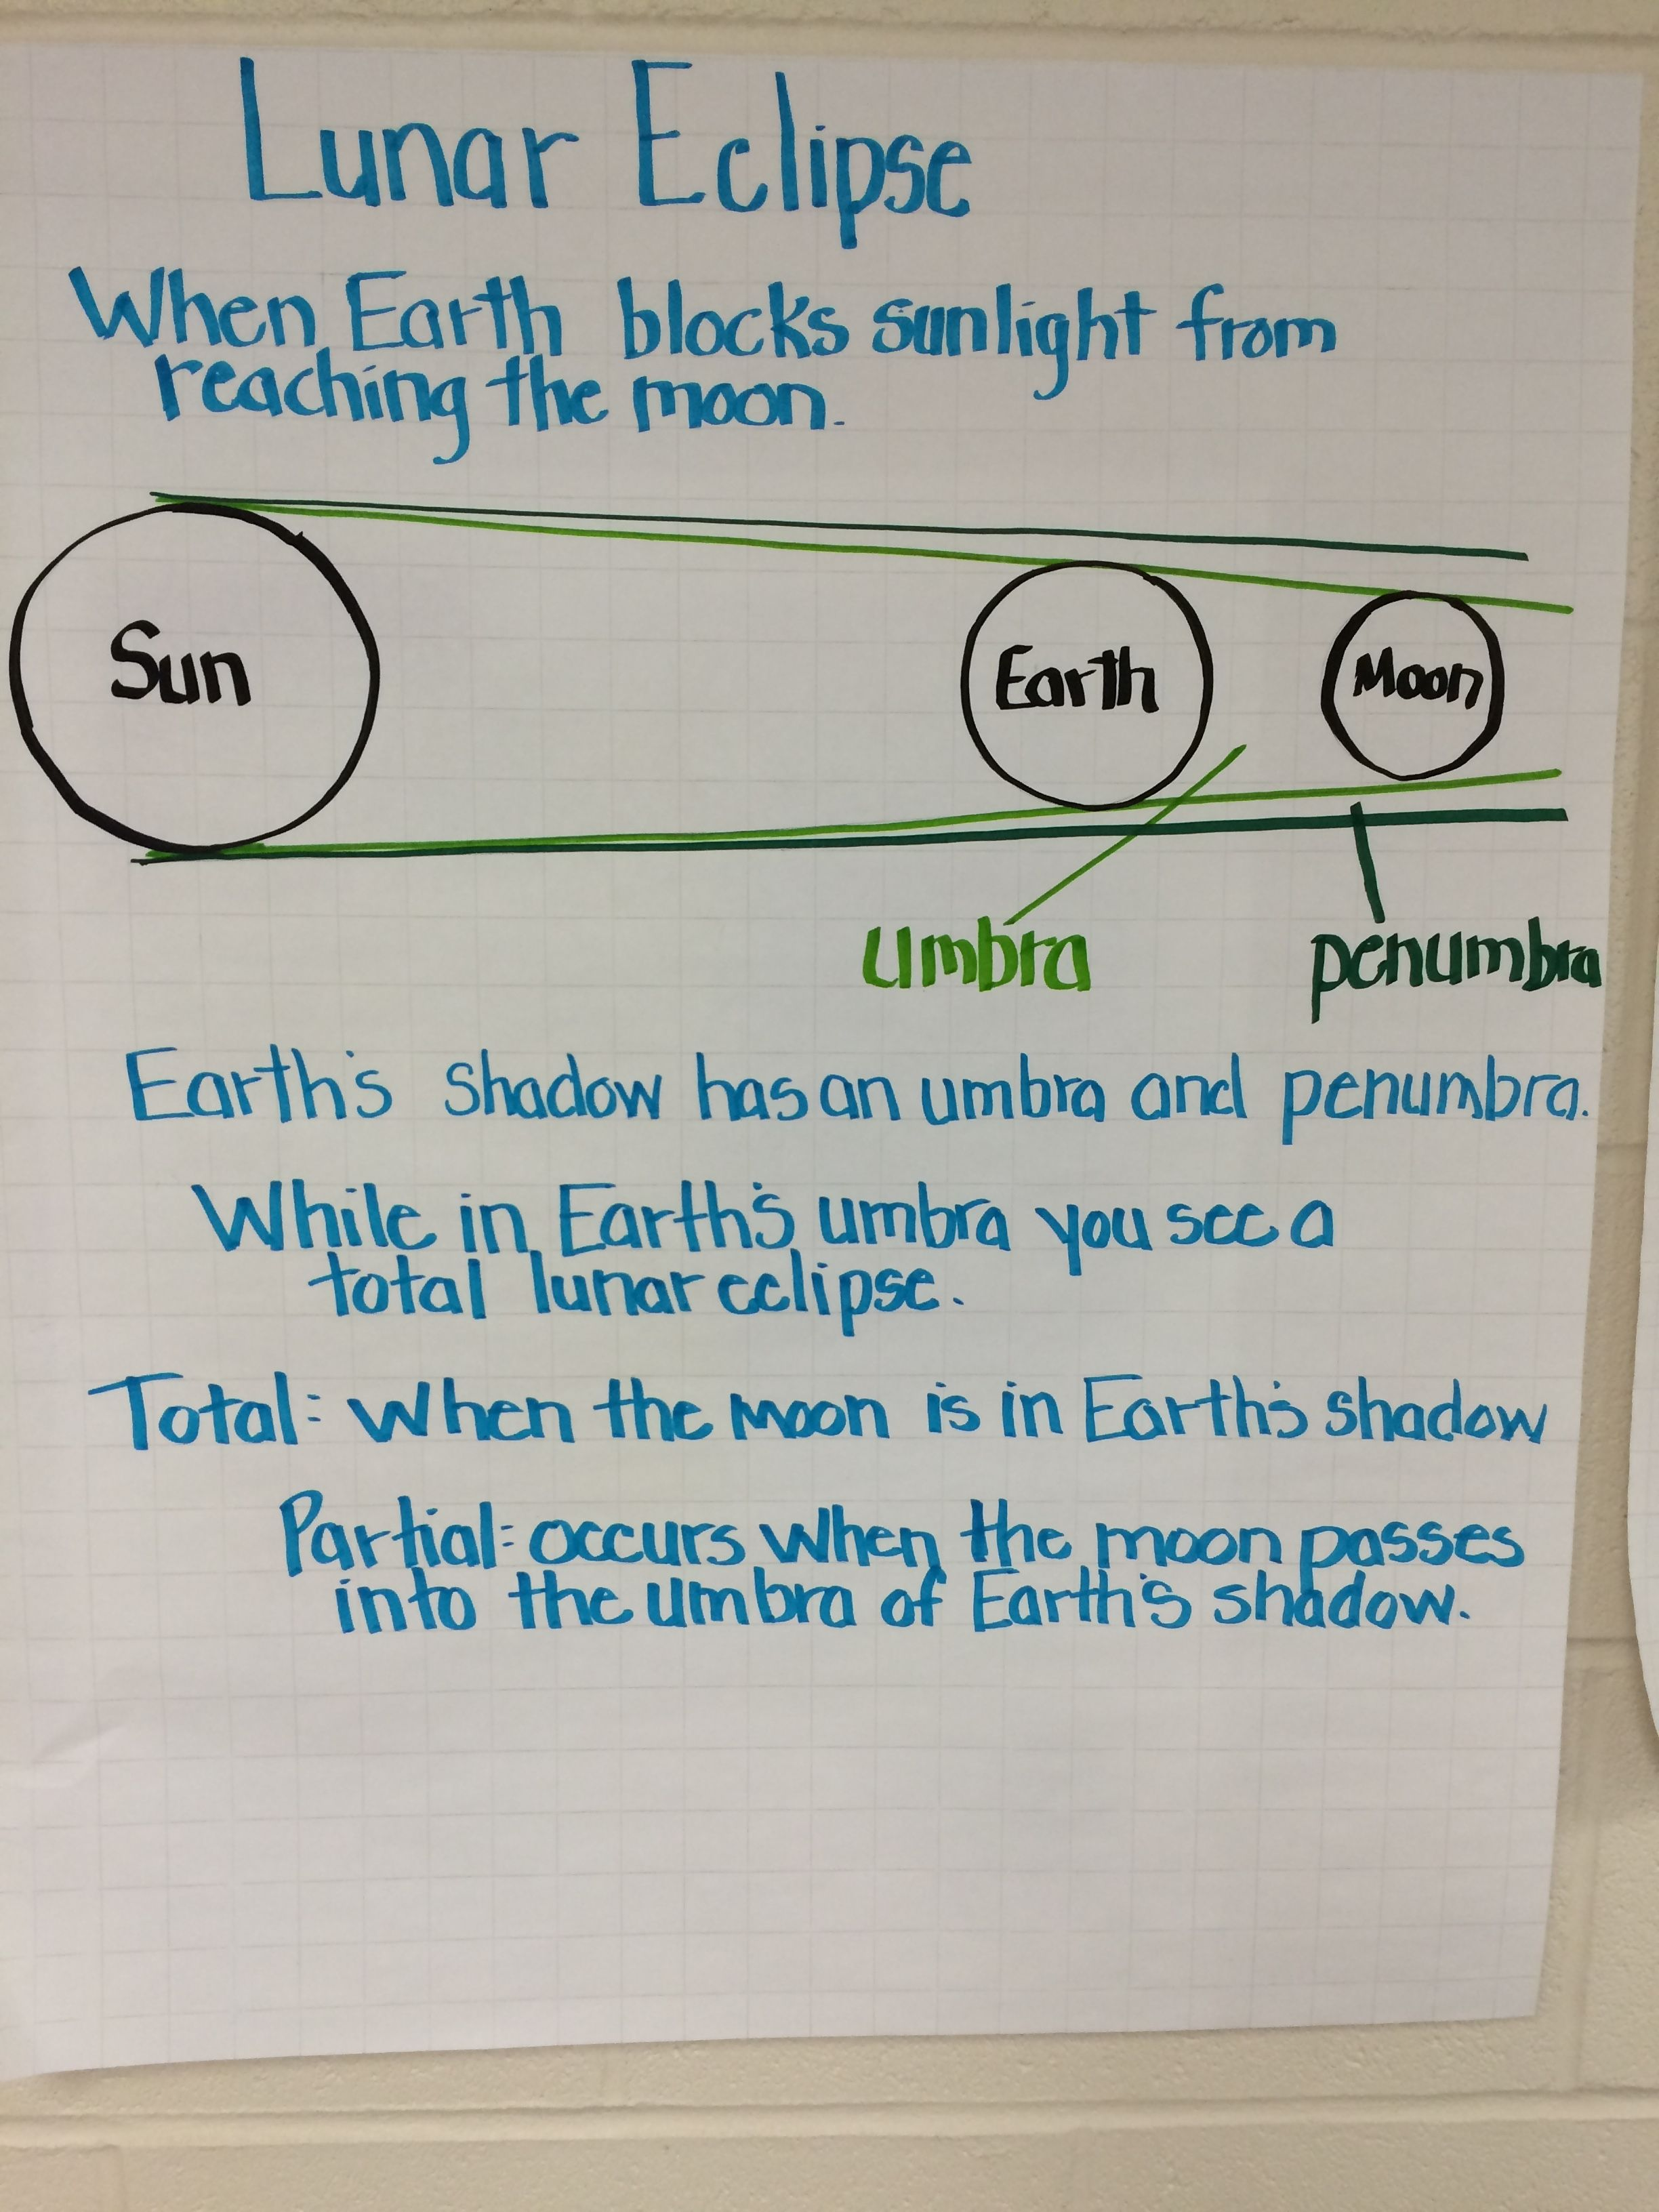 hight resolution of Lunar Eclipse Anchor Chart   Science anchor charts